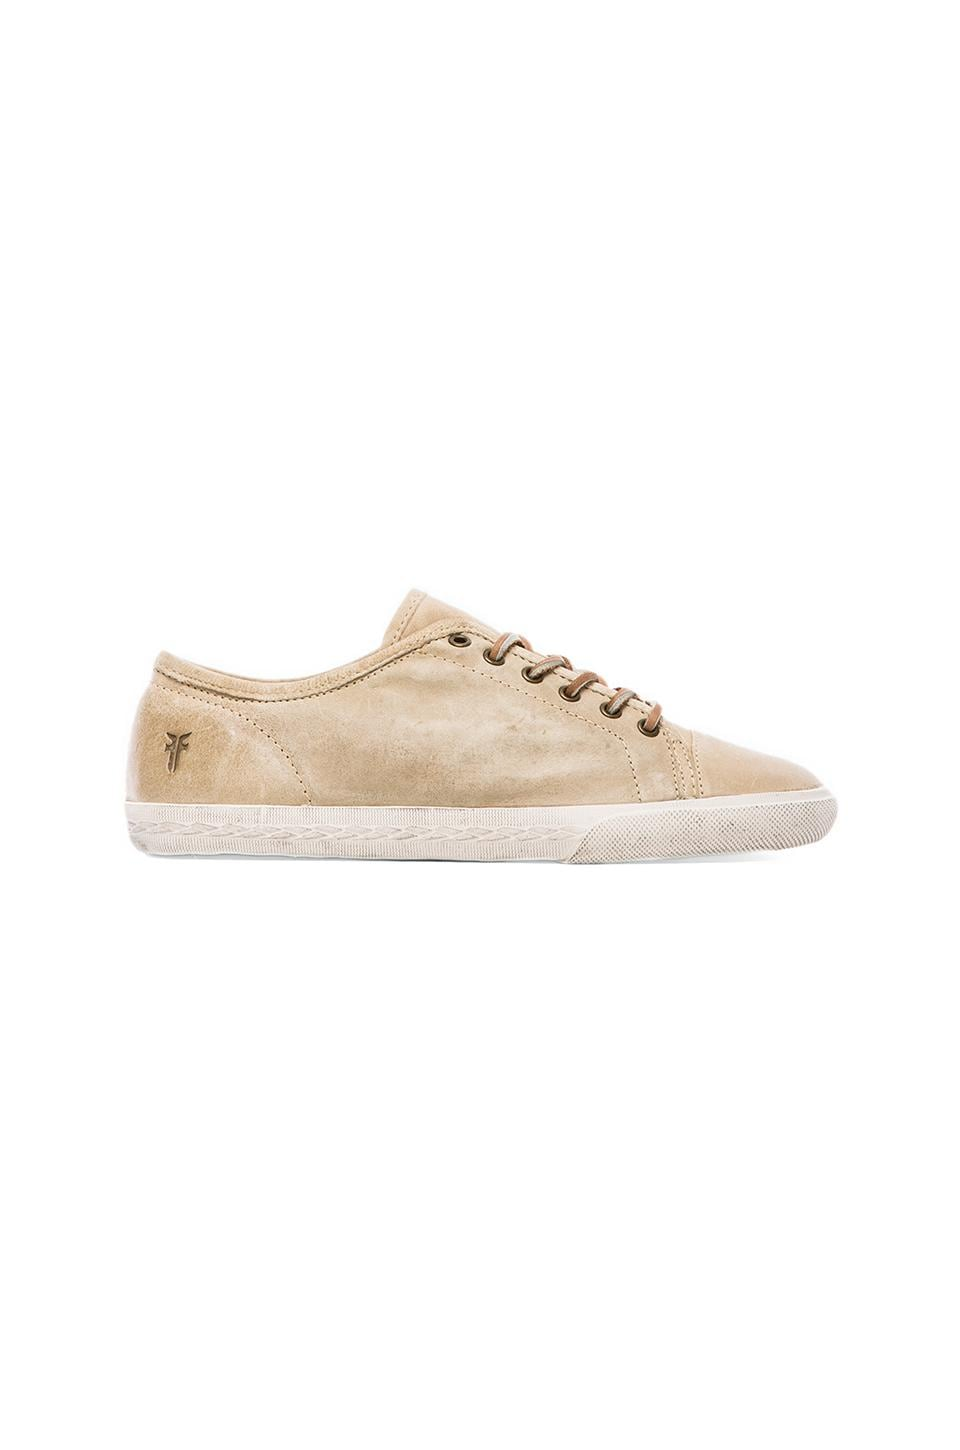 Frye Mindy Low Sneaker in Bone